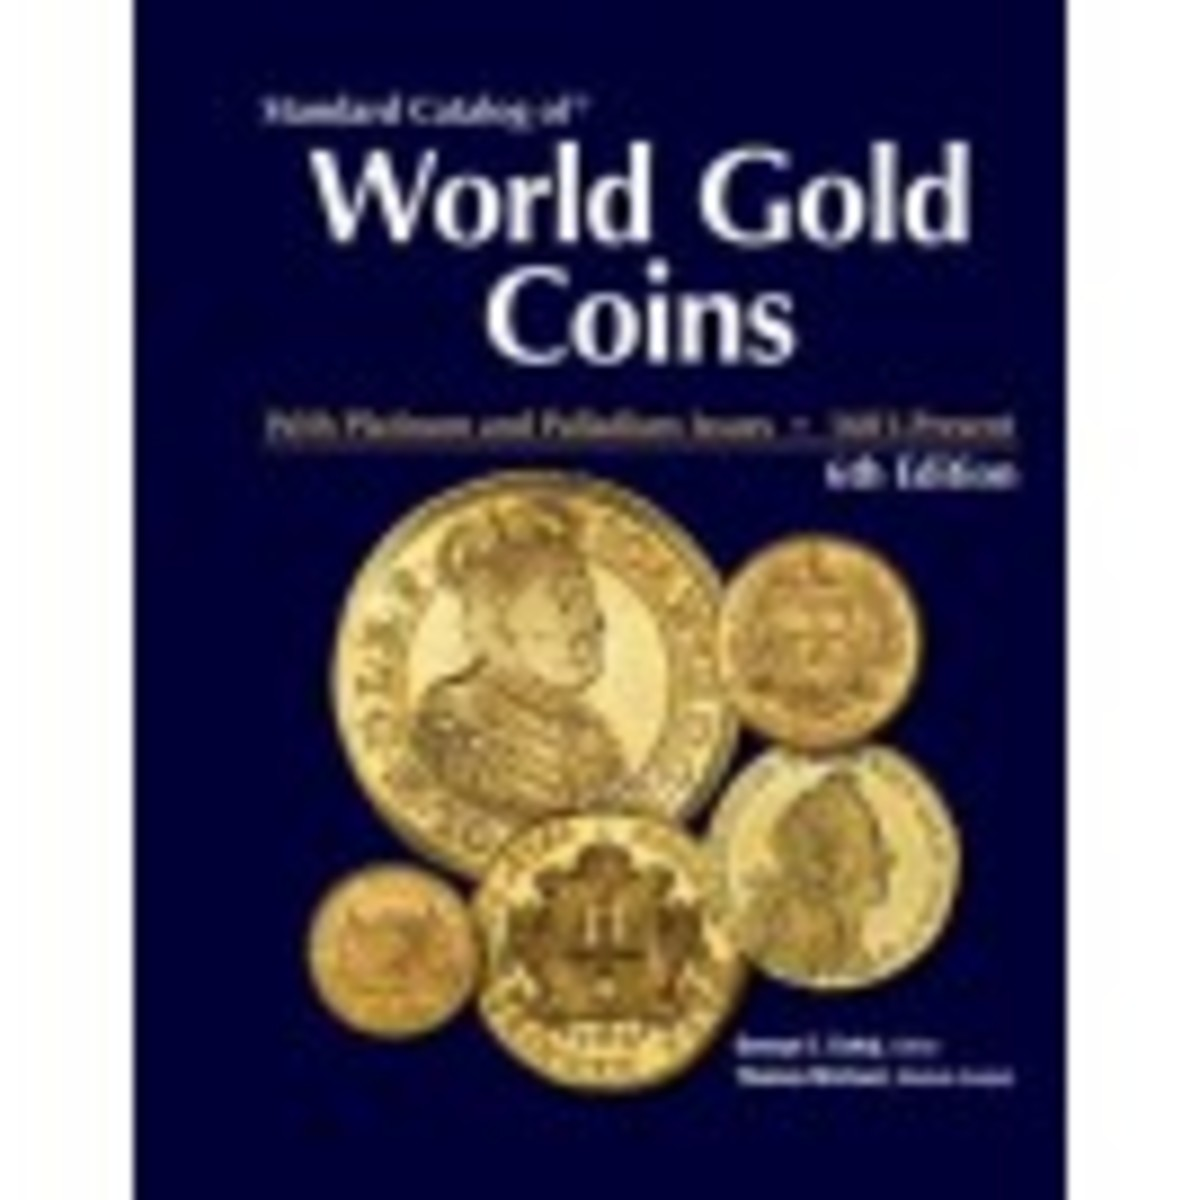 This new edition of the Standard Catalog of® World Gold Coins is 1,439 pages of more than 400 years of gold coins, from every region of the world.